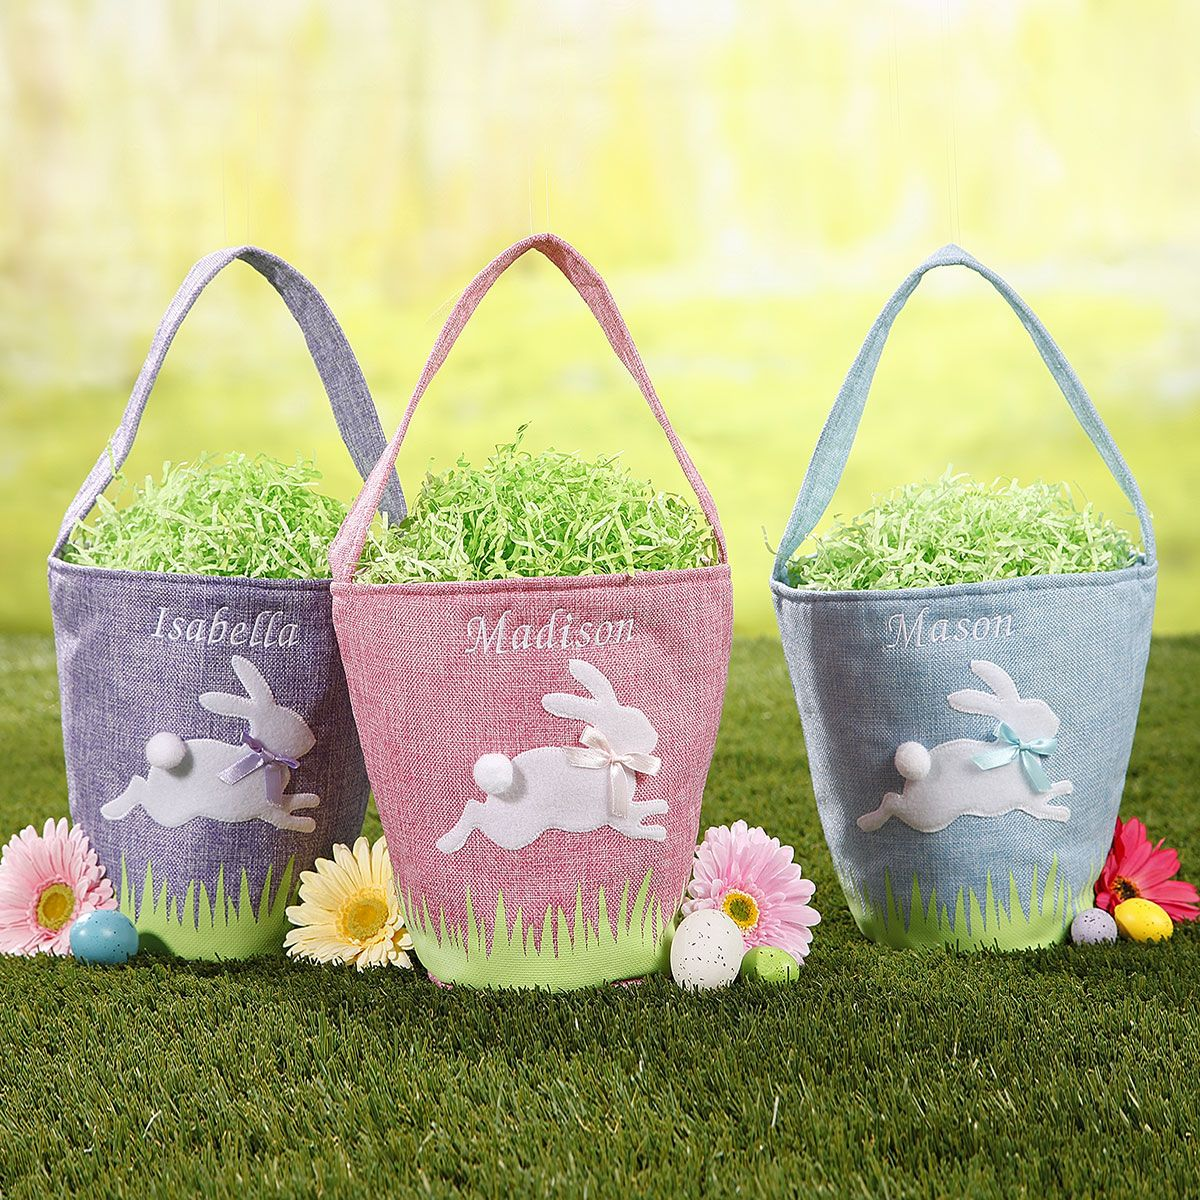 Personalized Linen Easter Bunny Baskets